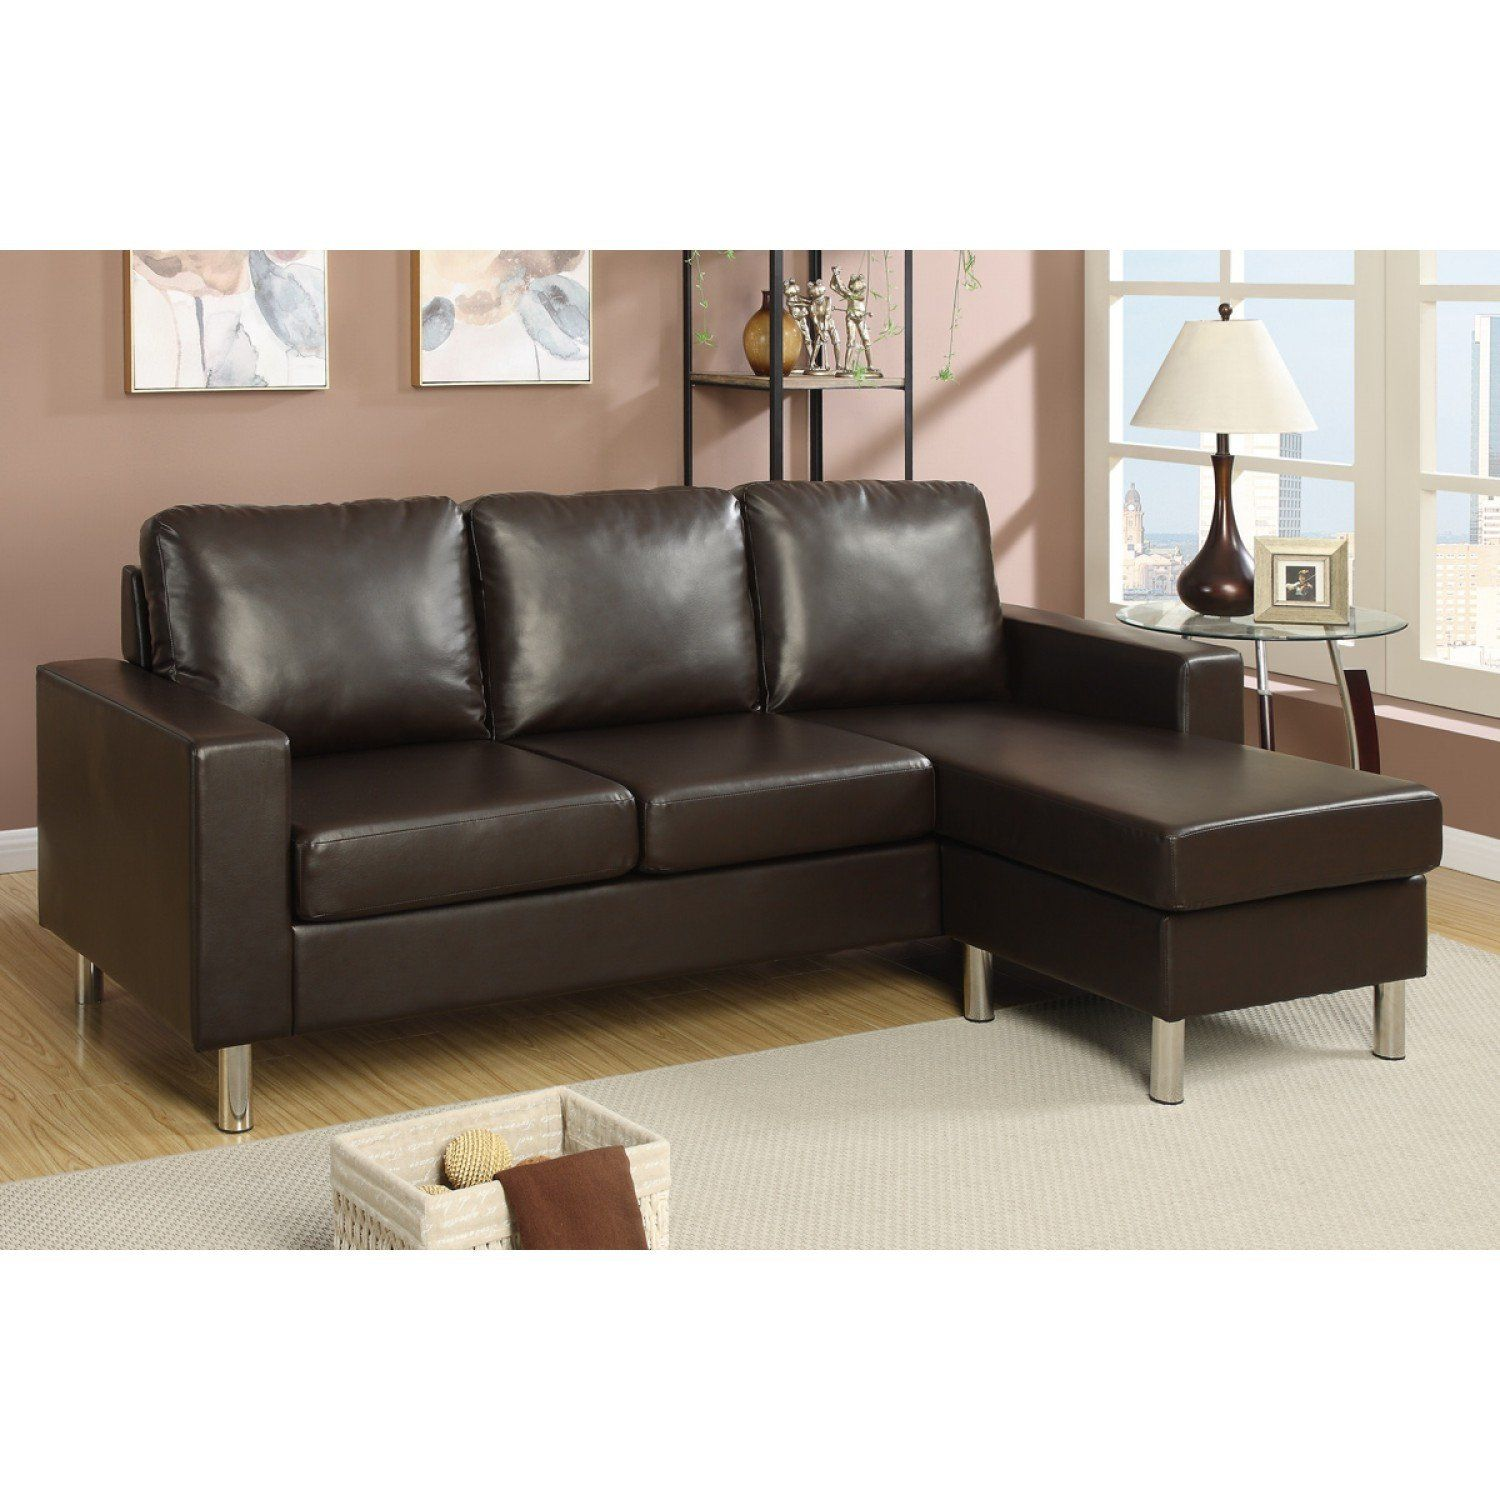 ottoman for living room%0A Espresso faux leather sectional sofa ottoman pd